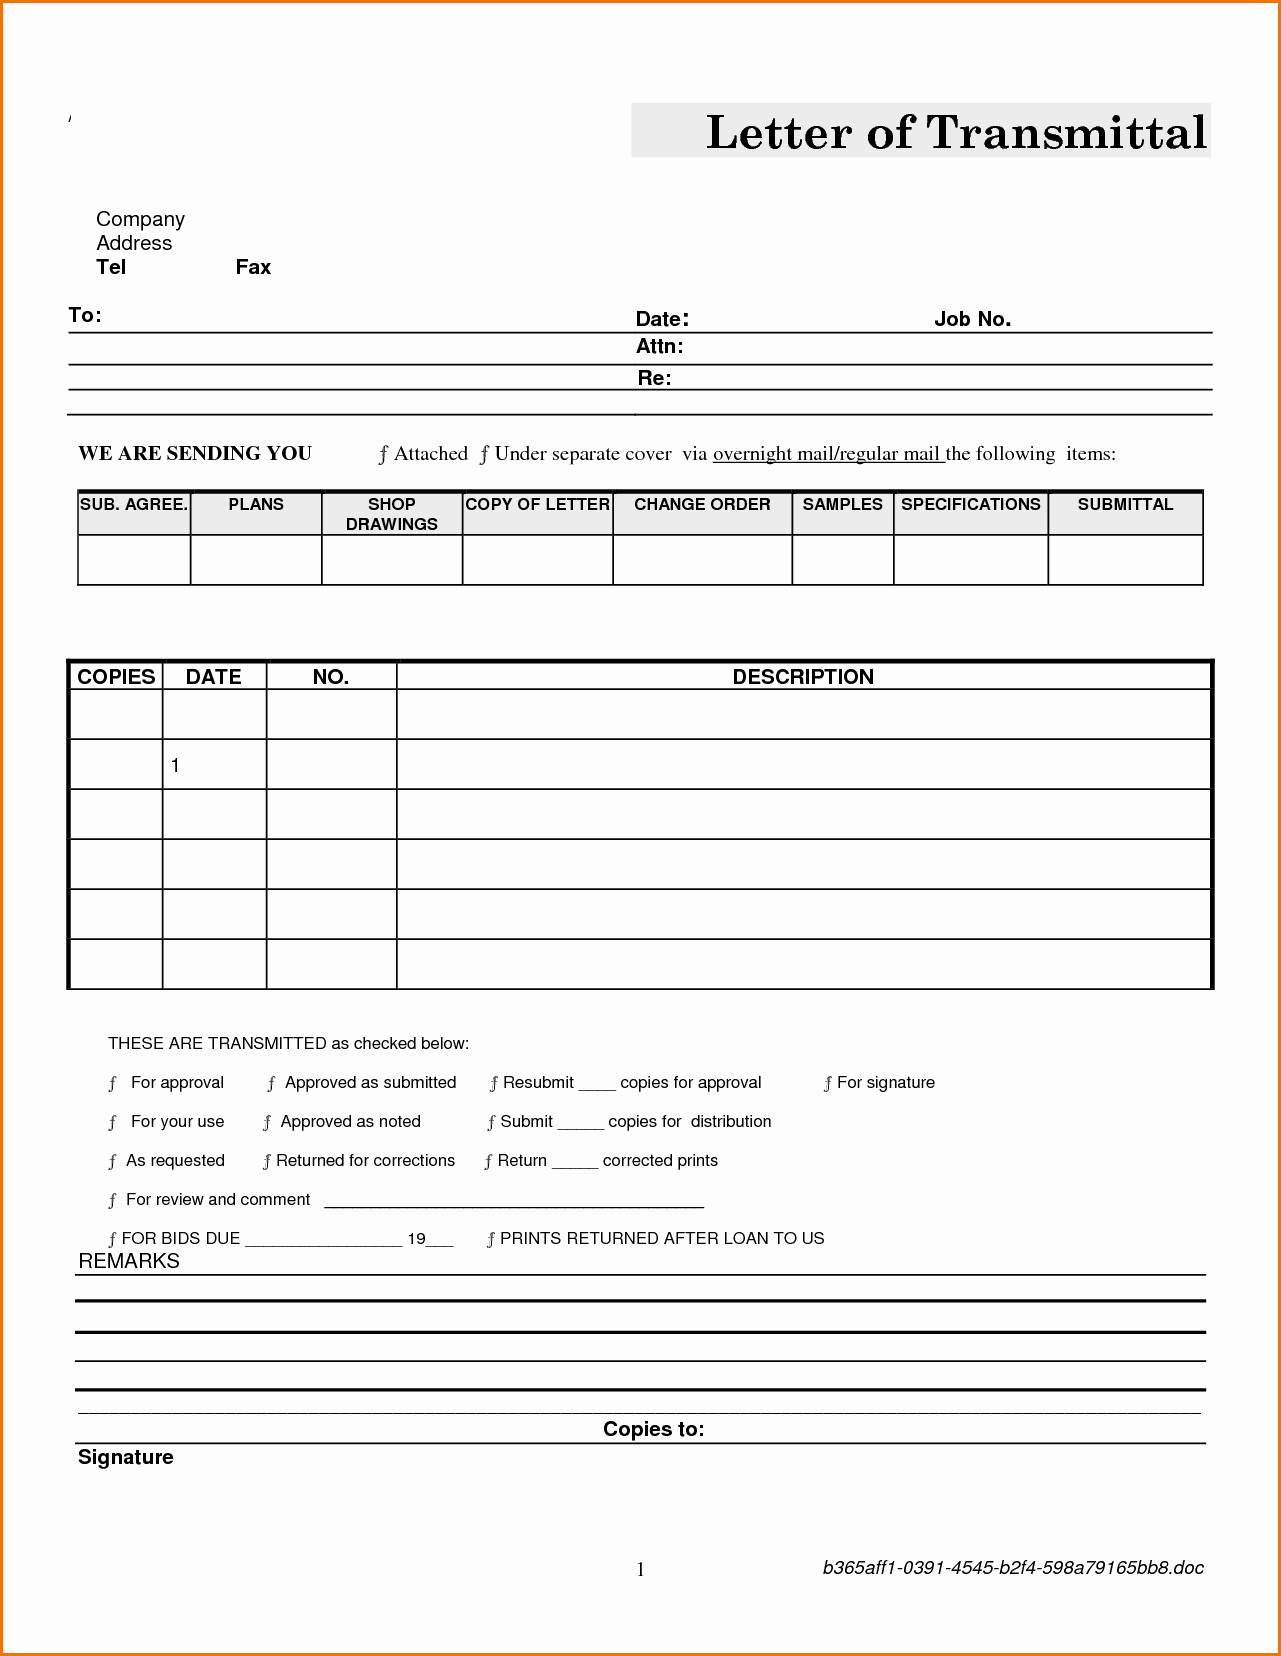 Letter Of Transmittal Template Construction - Transmittal form Sample Template New Construction Transmittal Letter